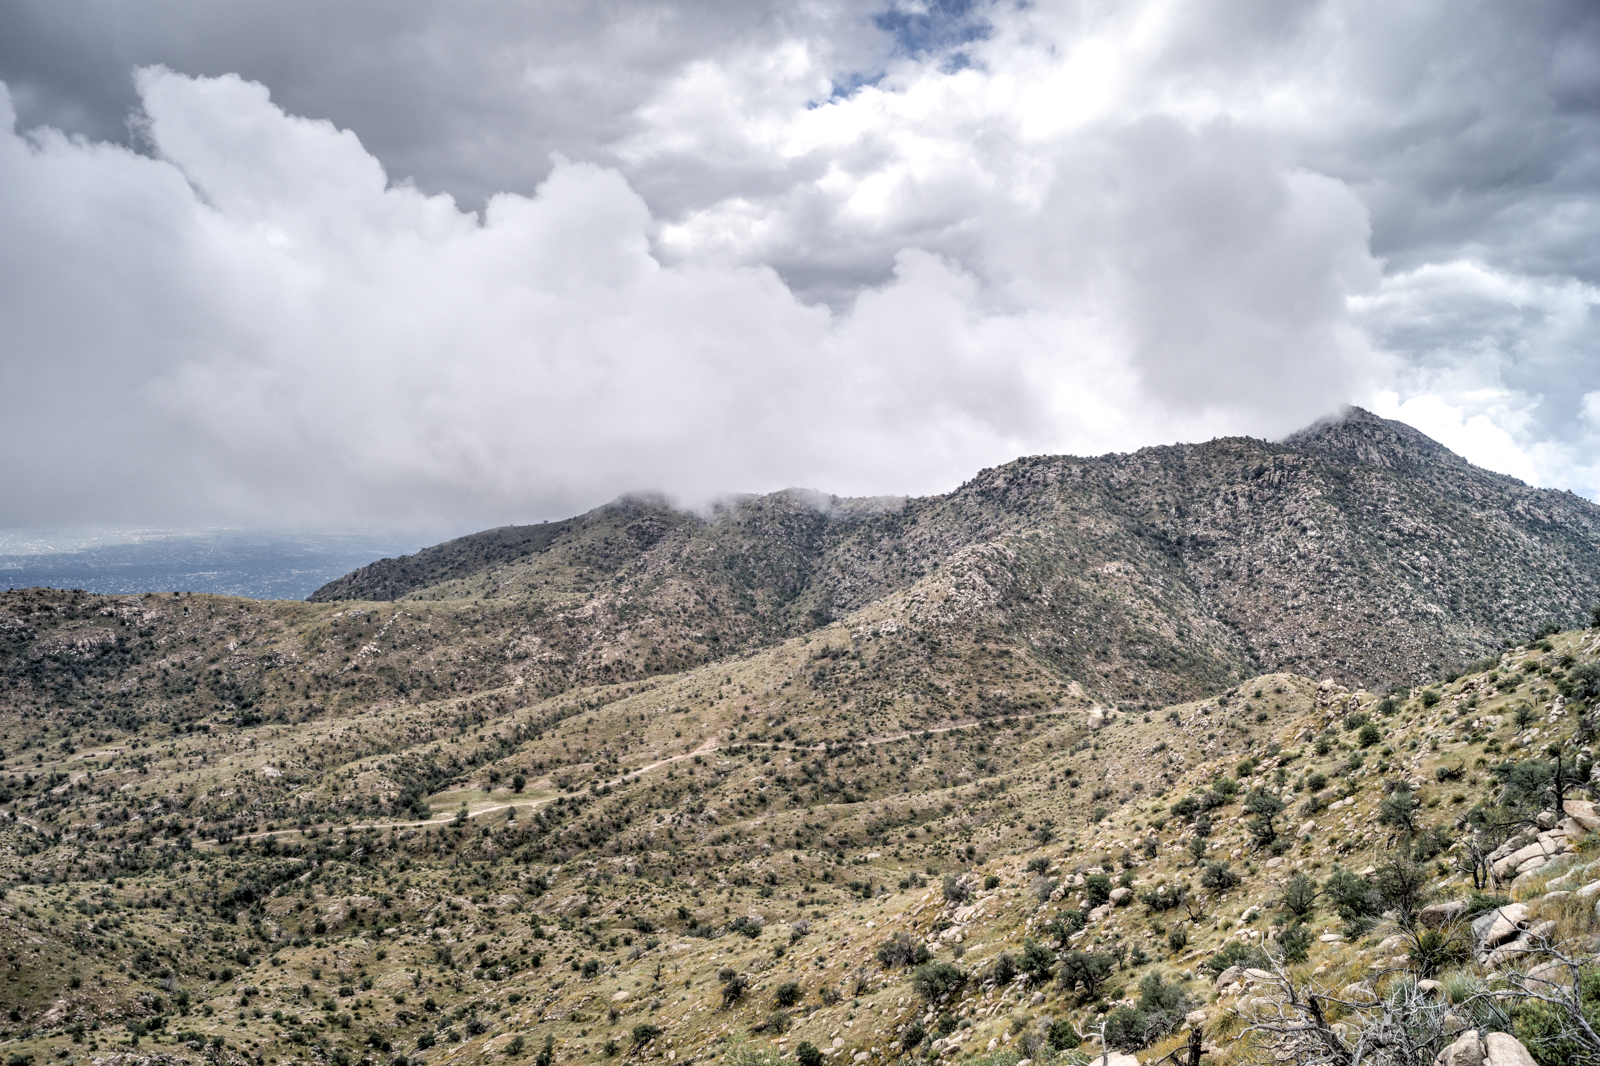 Storm over the Molino Basin Trail and Shreve Saddle. October 2014.